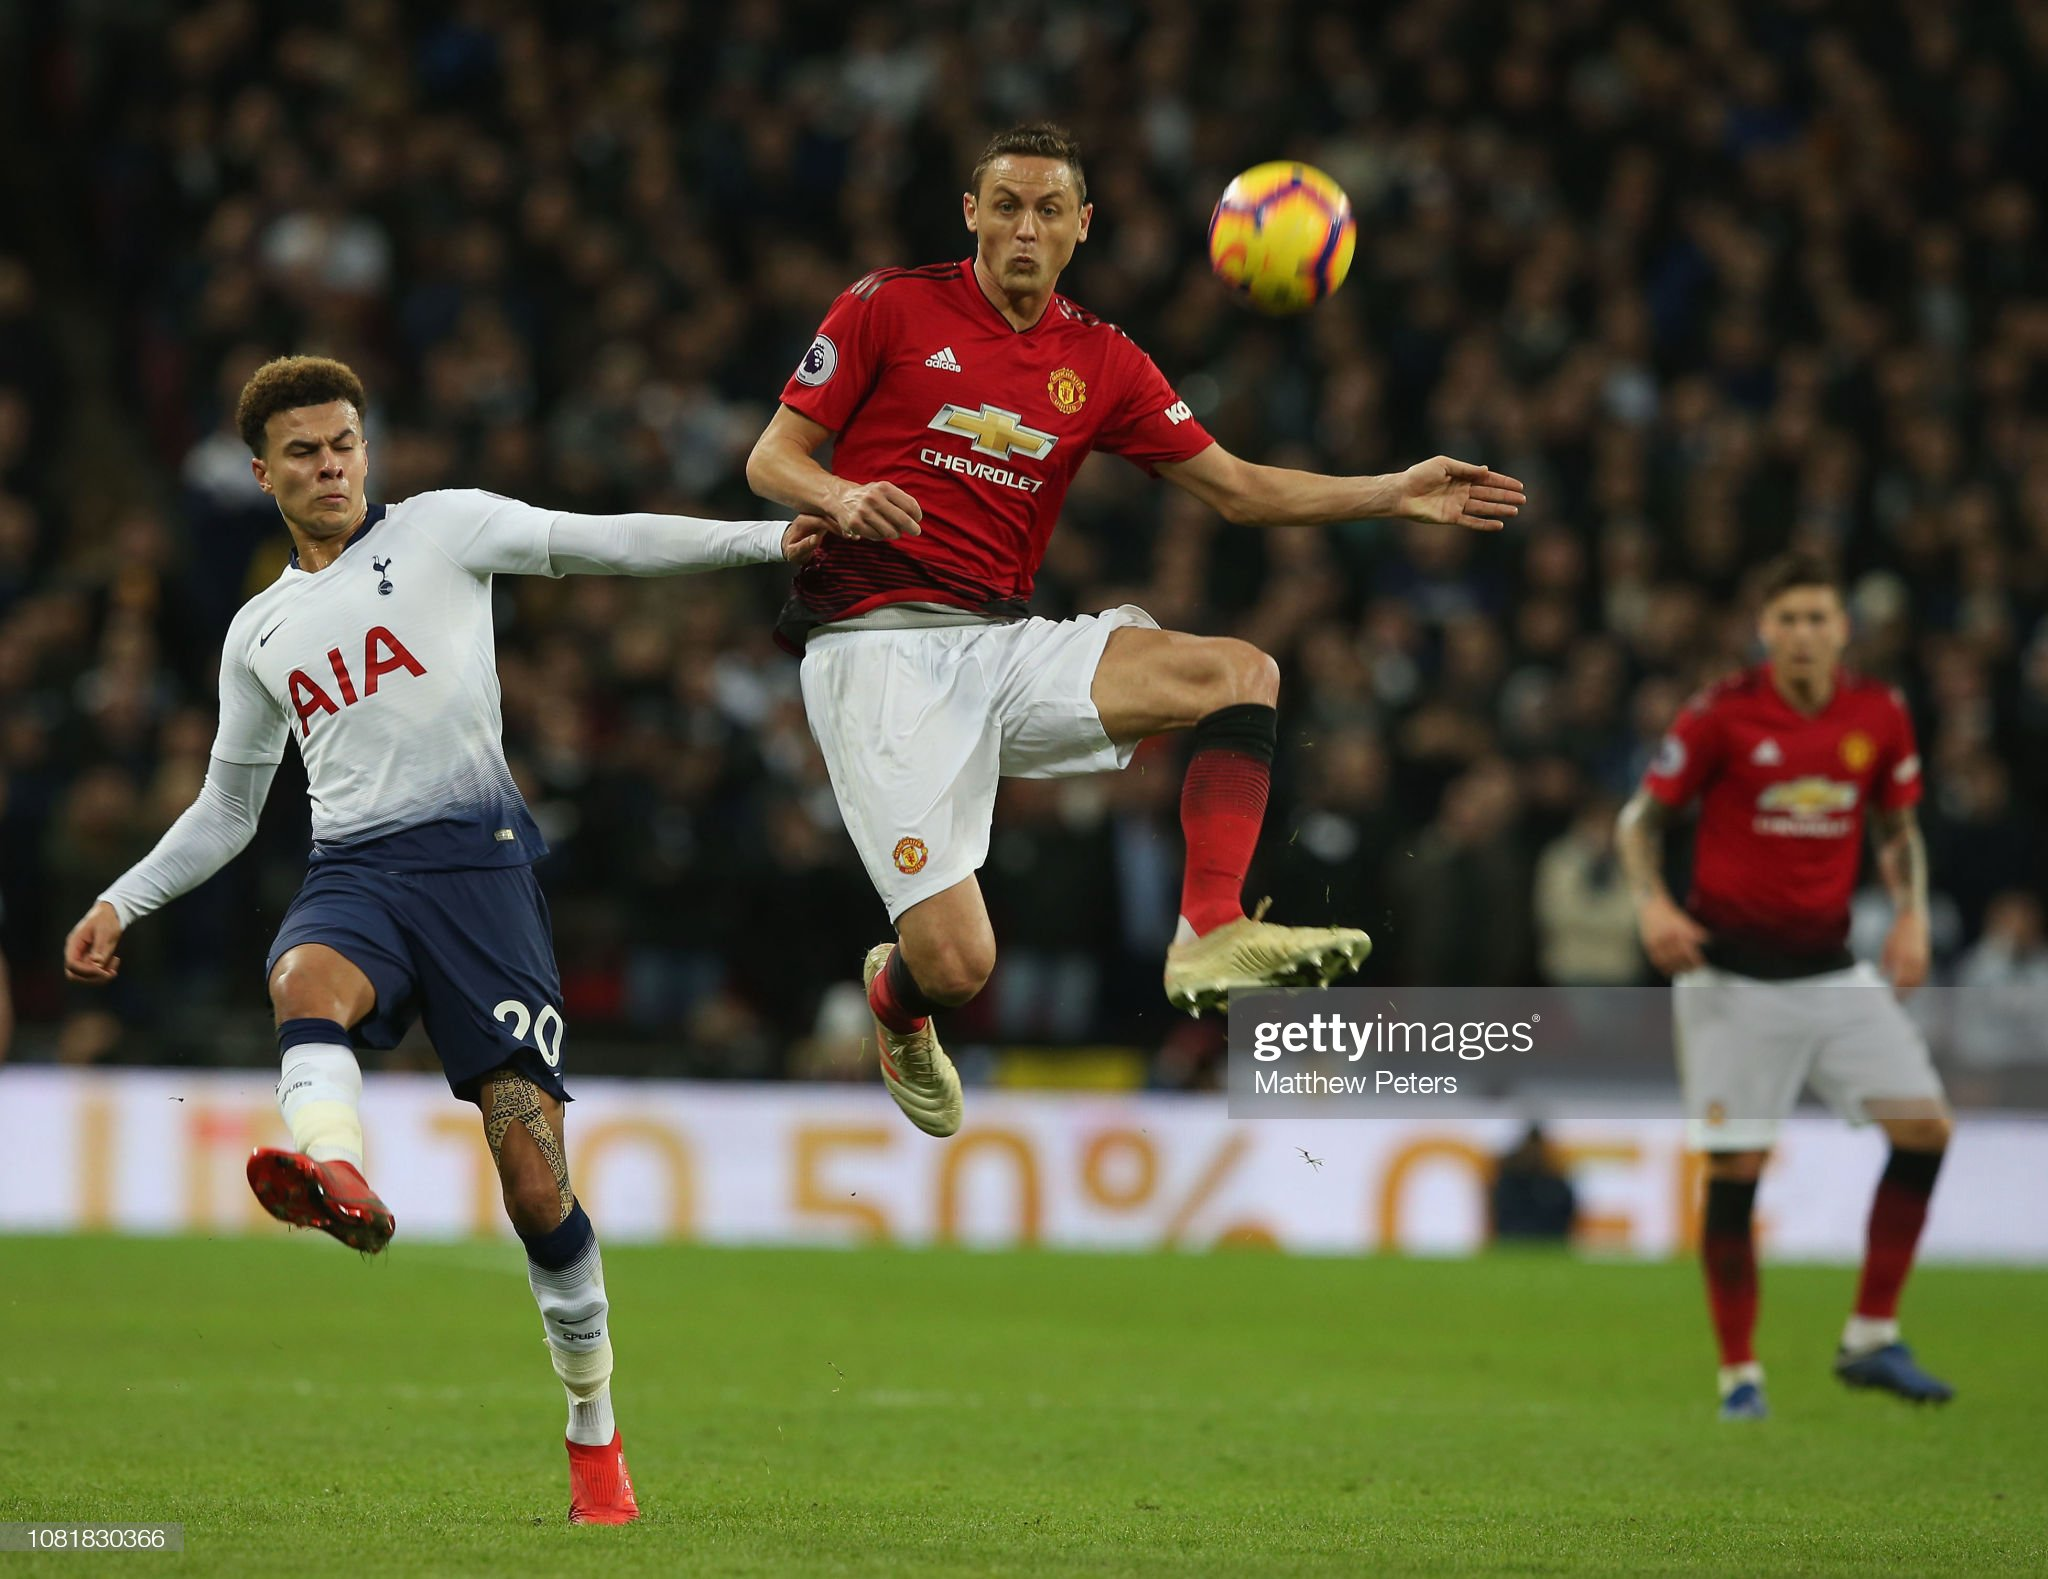 Manchester United v Tottenham preview, prediction and odds